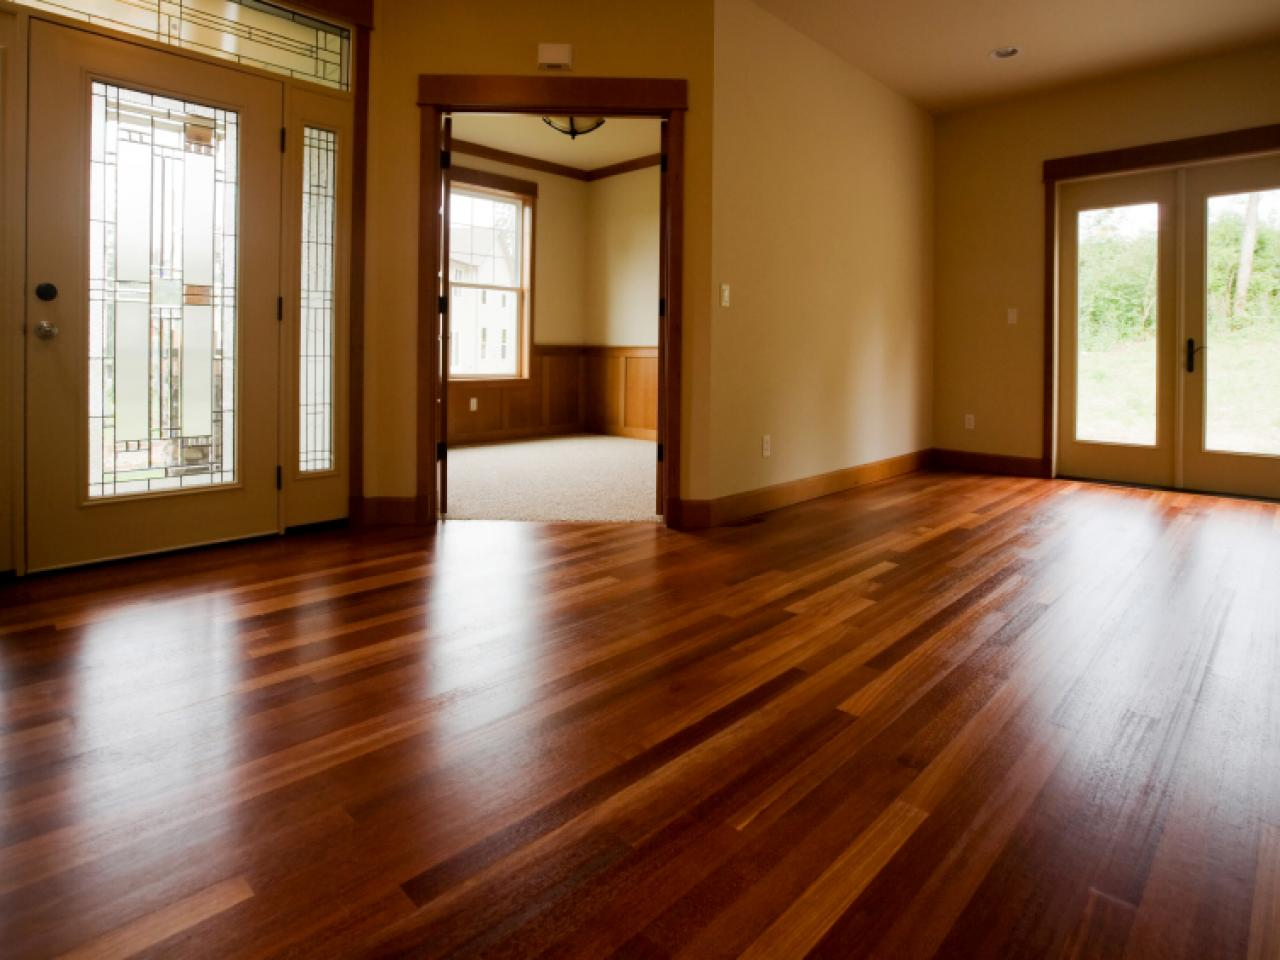 Tips for Cleaning Tile, Wood and Vinyl Floors - Tips For Cleaning Tile, Wood And Vinyl Floors DIY